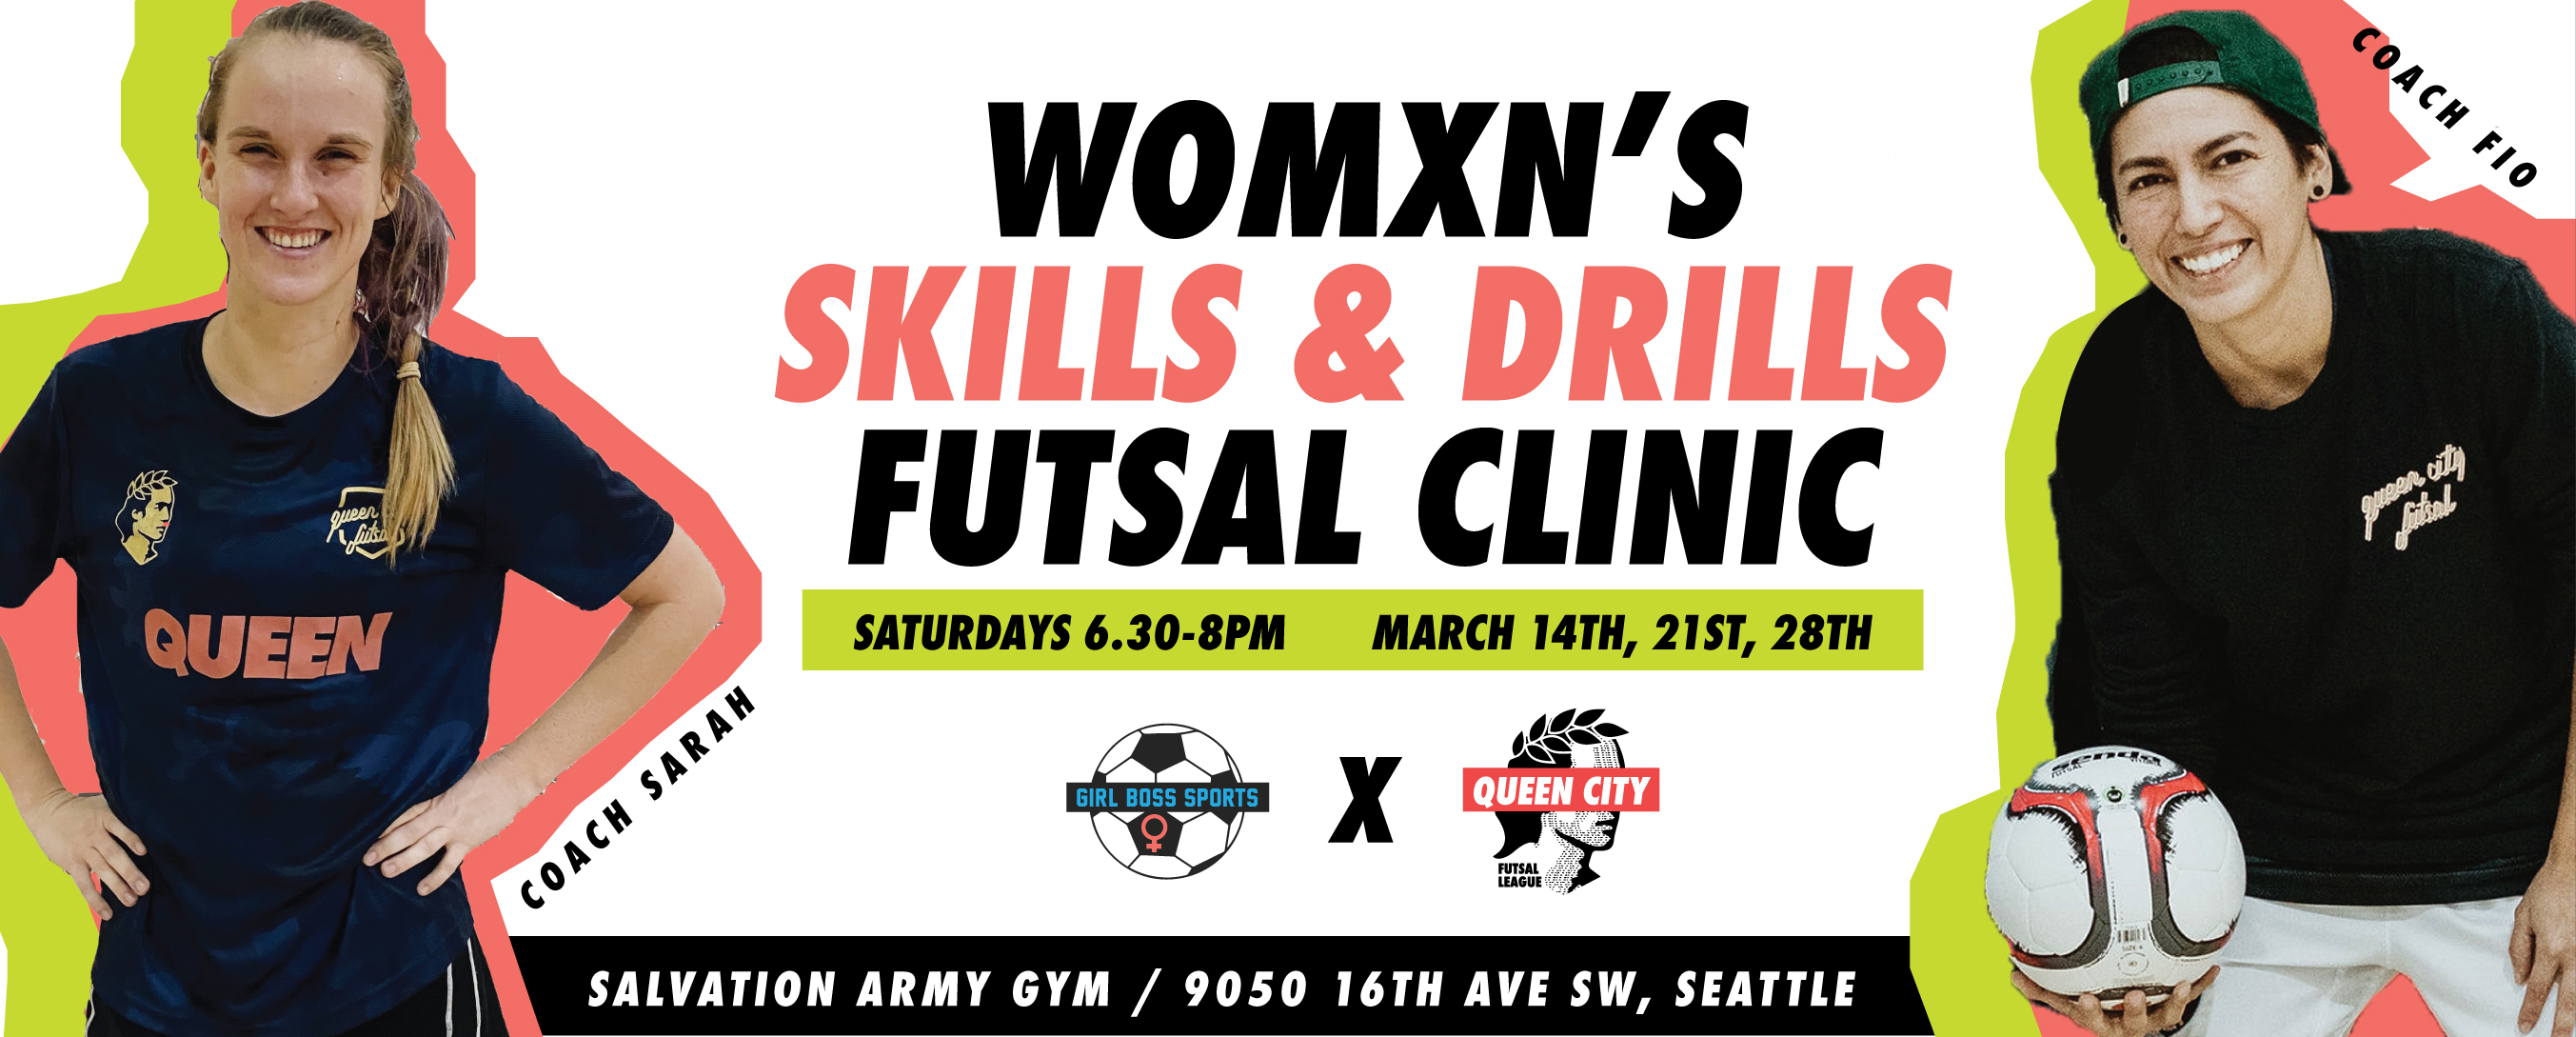 "Girl Boss Sports partners with Queen City Futsal to bring you ""Skills and Drills"" March Futsal Clinics"